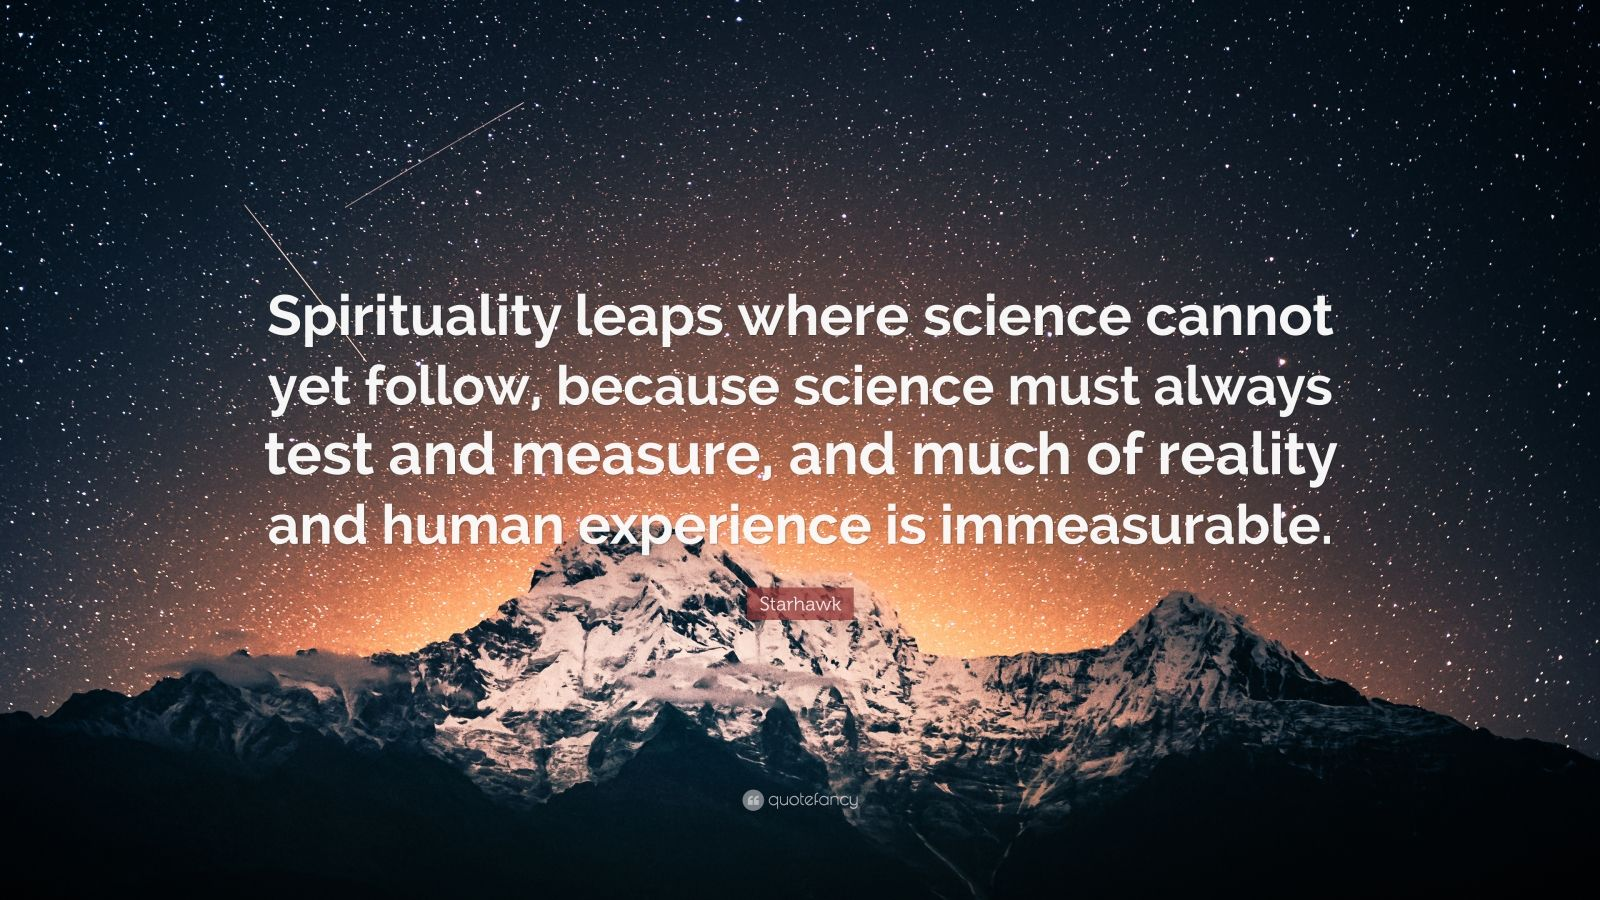 """Starhawk Quote: """"Spirituality leaps where science cannot yet follow, because science must always test and measure, and much of reality and human experience is immeasurable."""""""